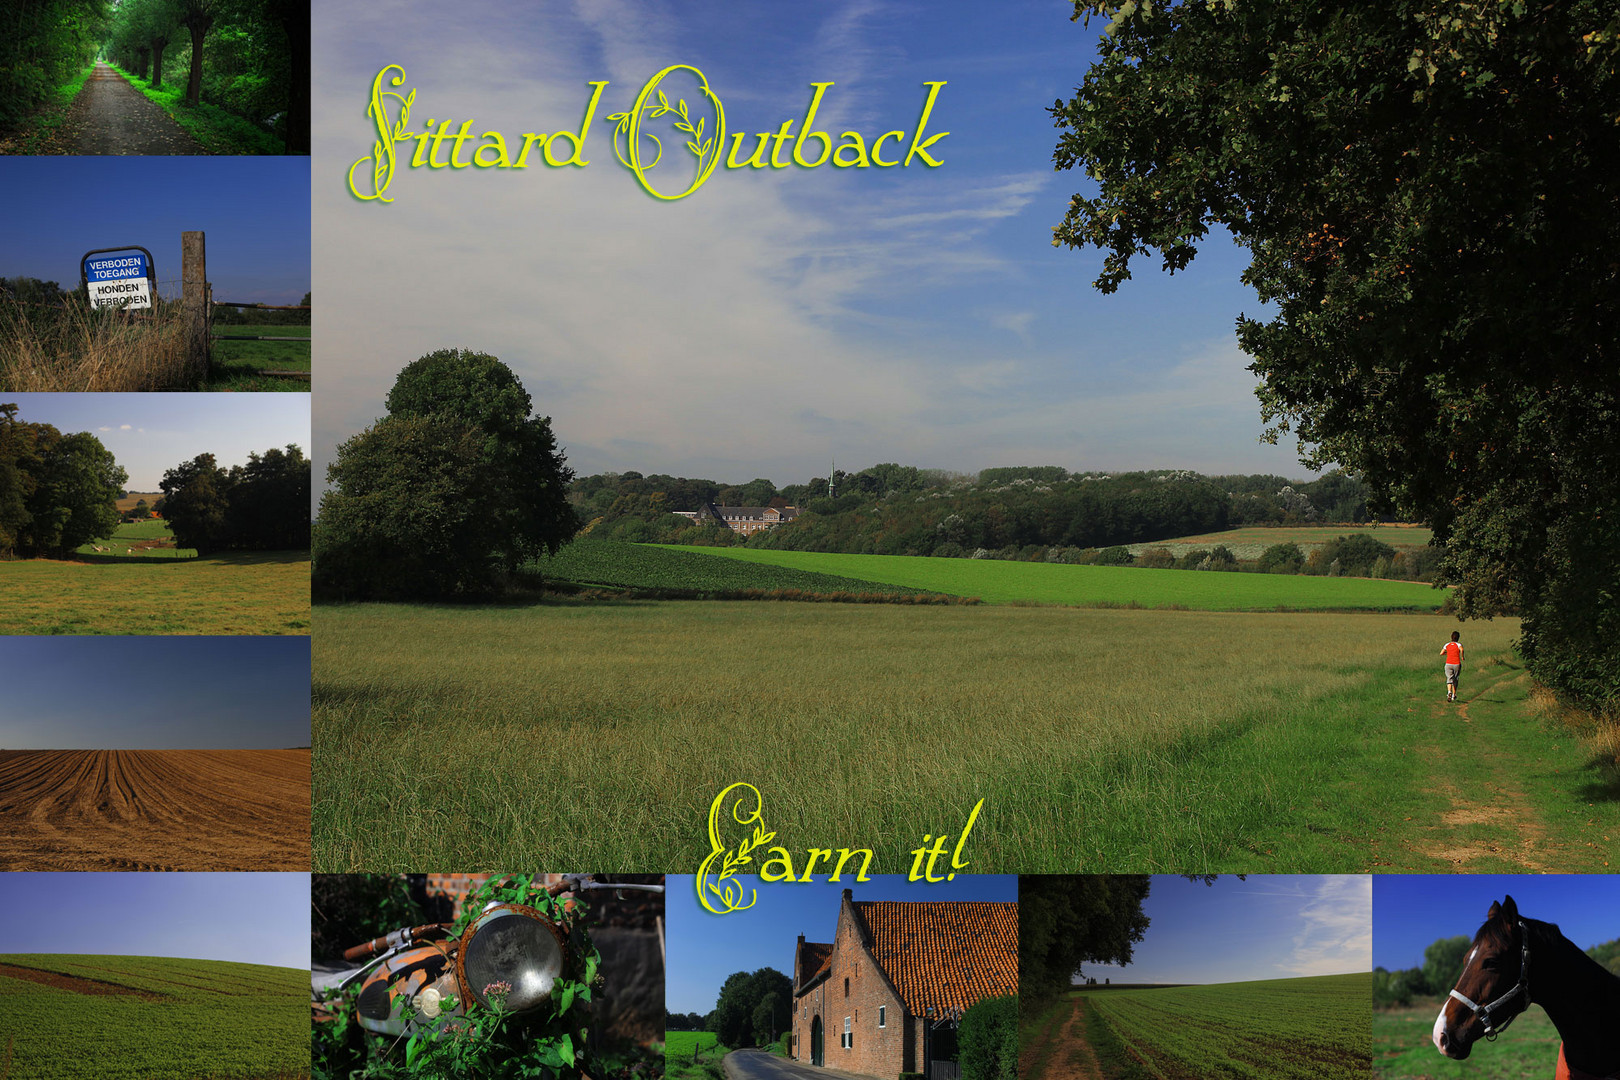 Sittard Outback